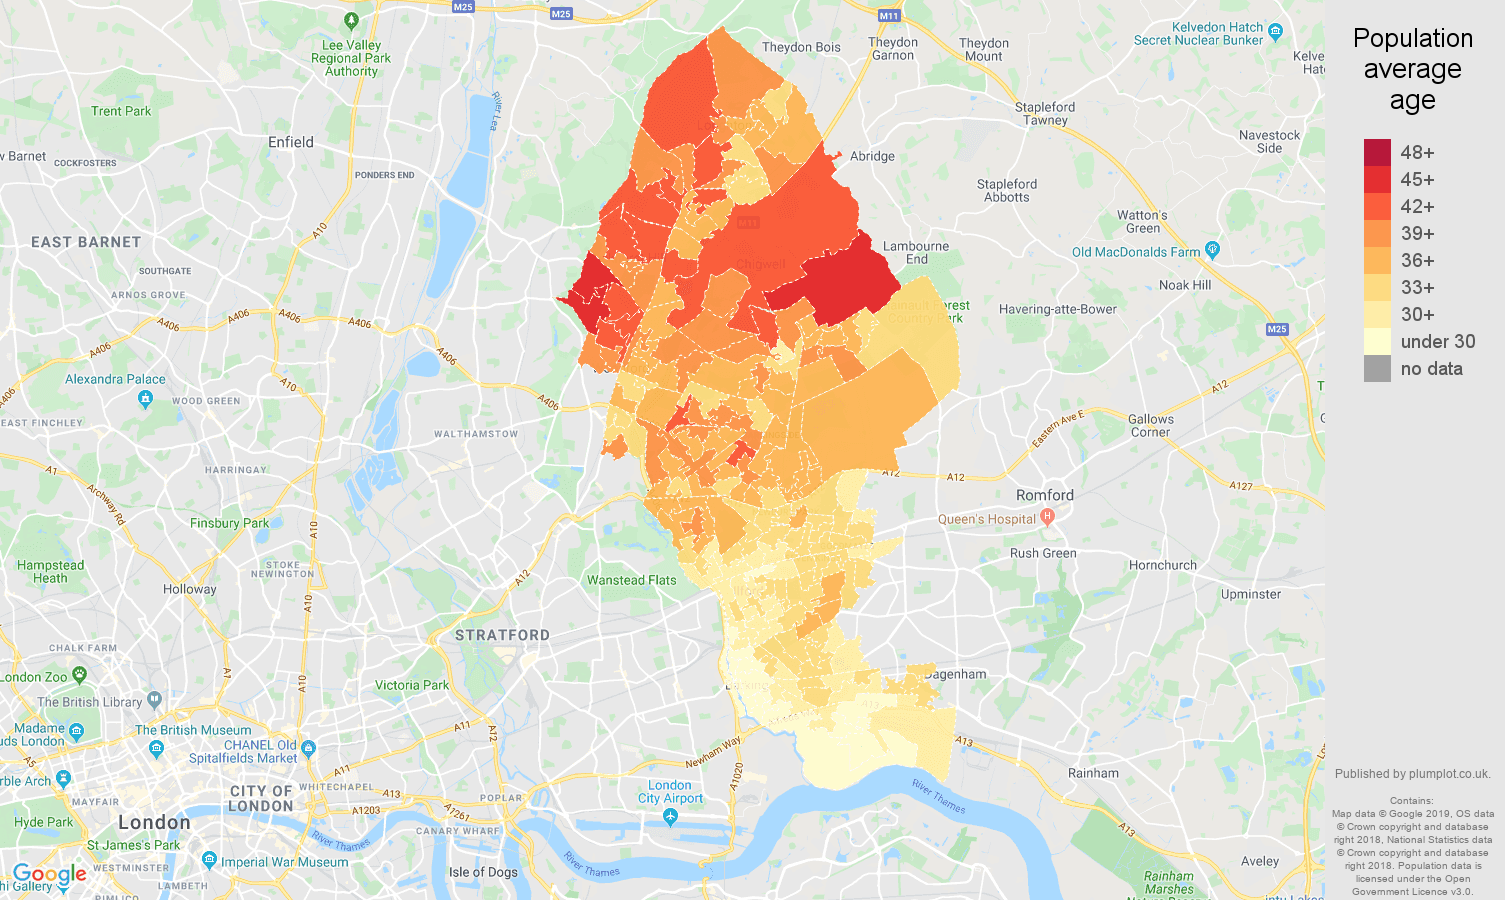 Ilford population average age map